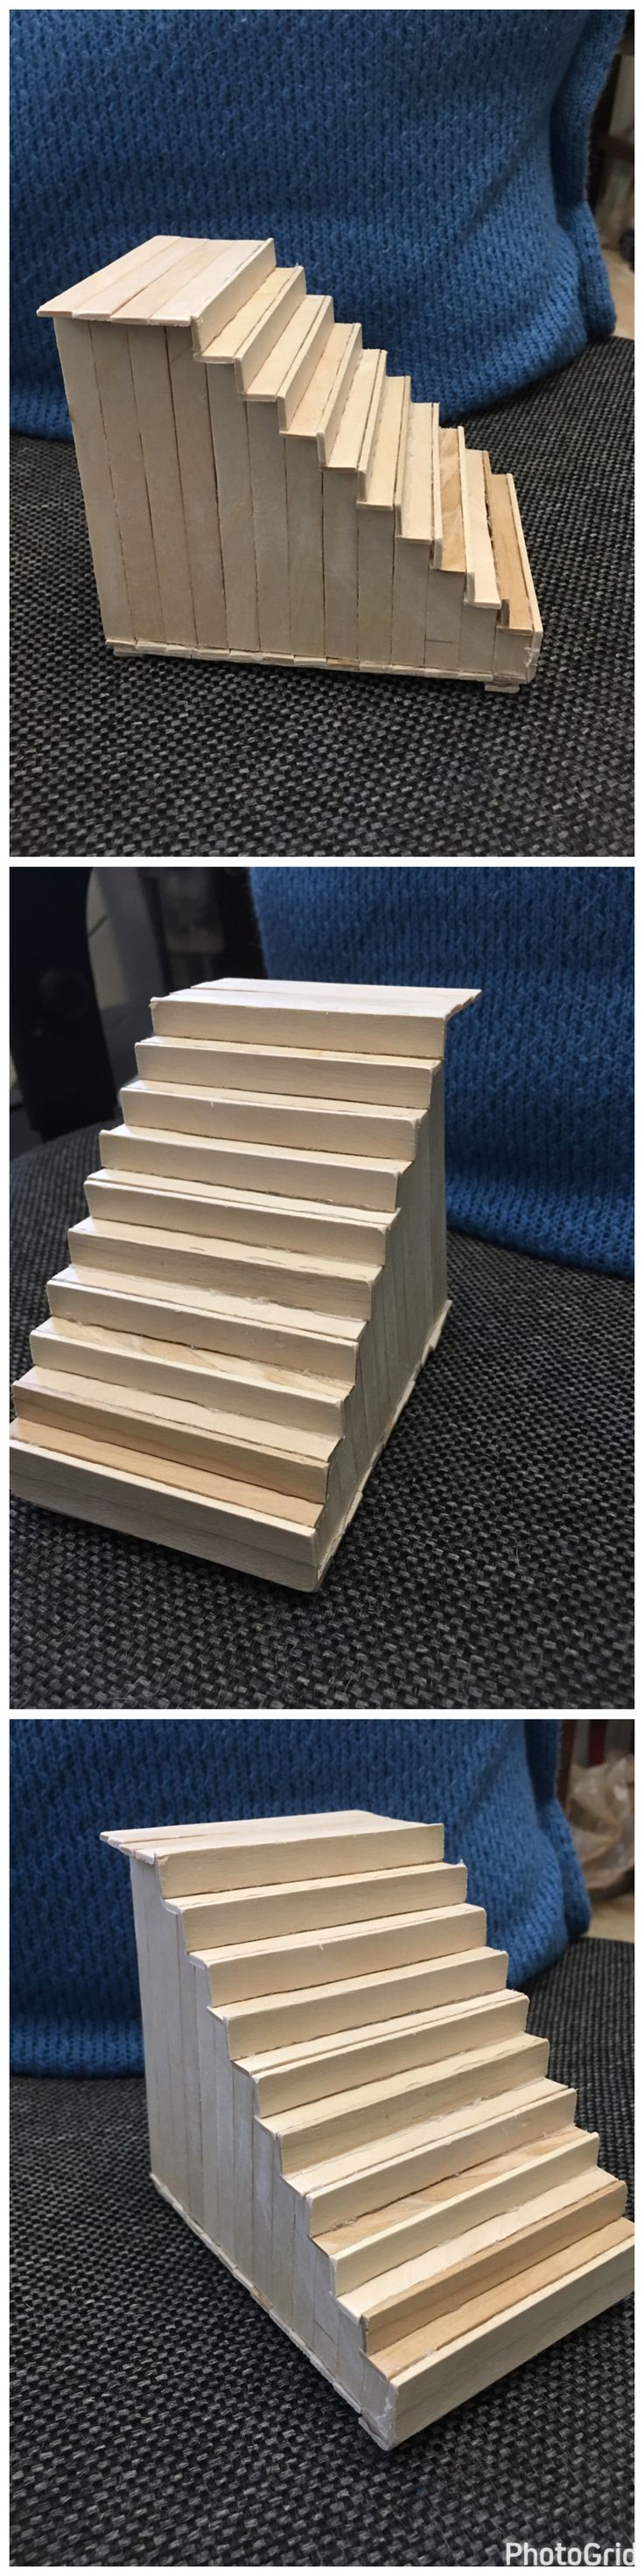 Diy hamster/pet staircase to lead to another level/platform made out of popsicle sticks